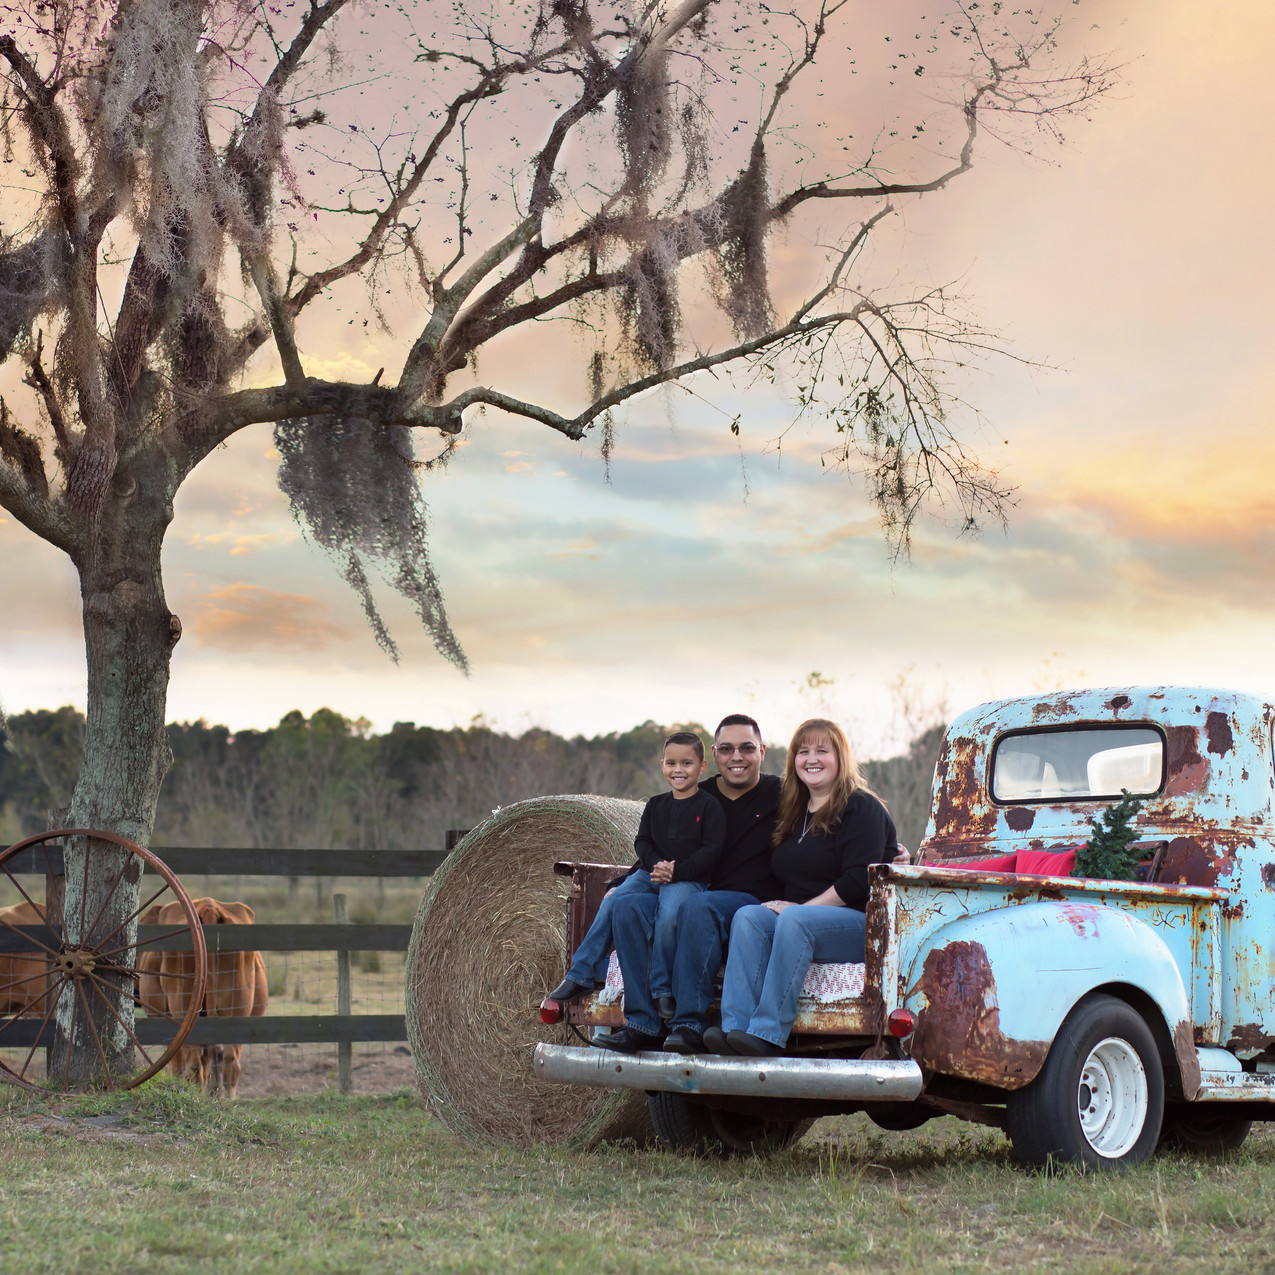 Tampa Family Photographer BEcky Truck sesion_Dec102016_0014 copy